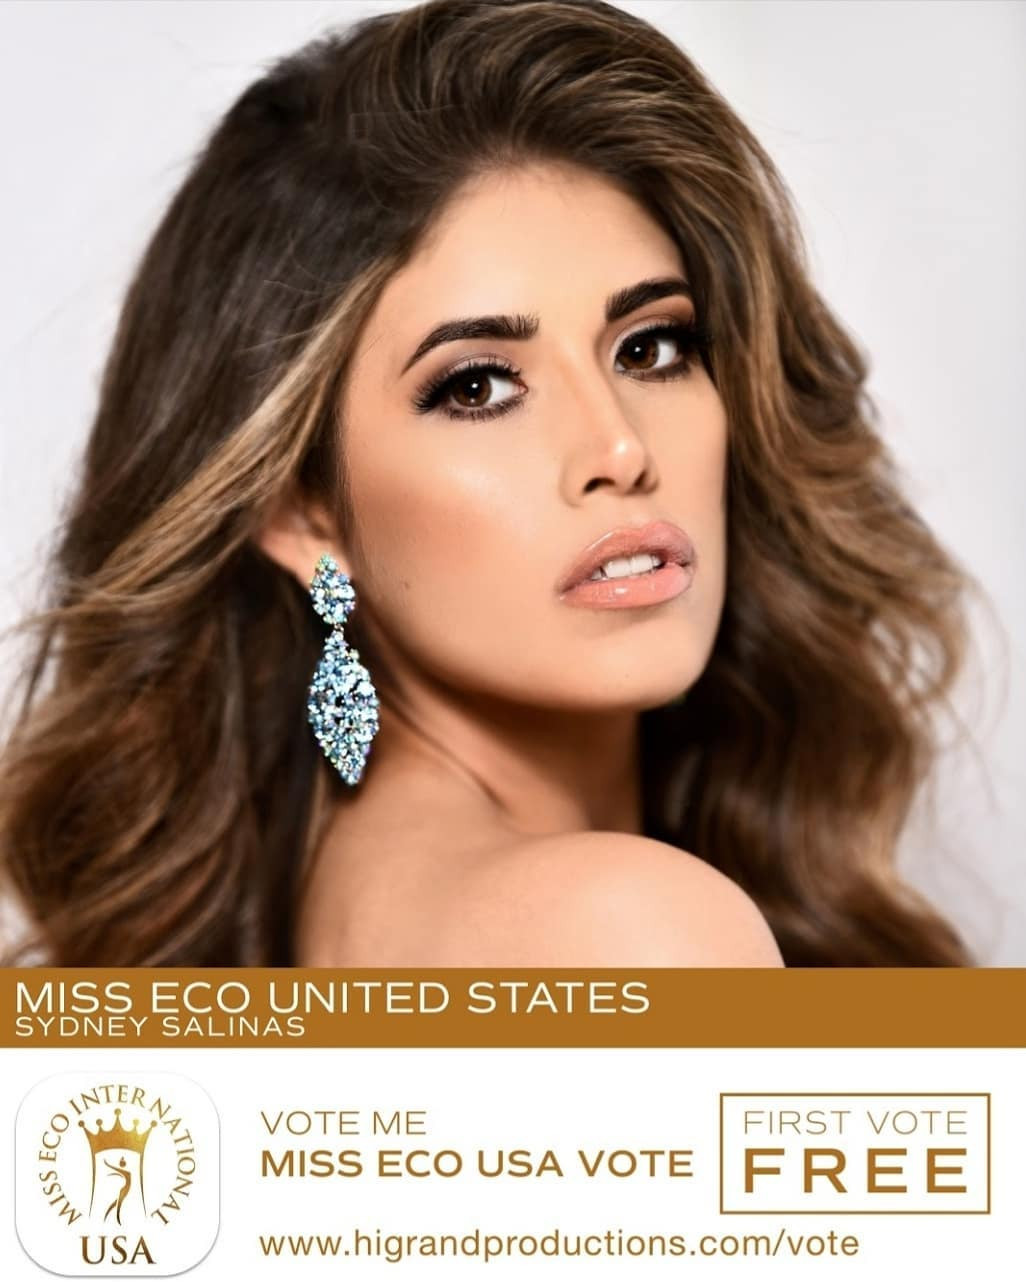 candidatas a miss eco usa 2021. final: 18 june. CJlIPS